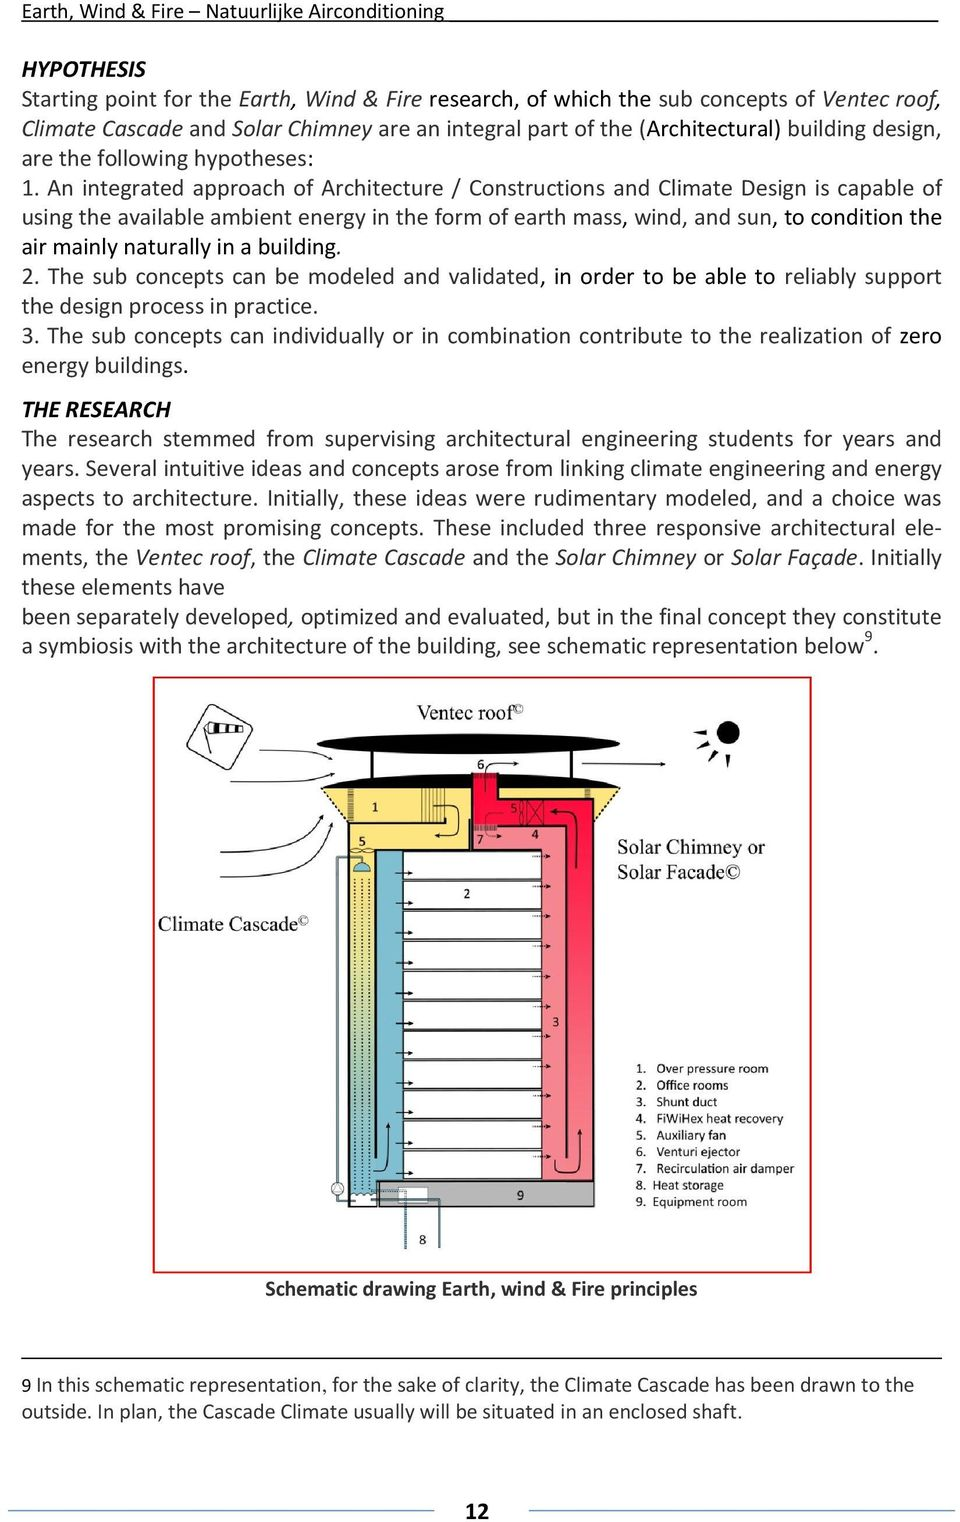 Earth Wind Fire Natuurlijke Airconditioning Pdf Envelope Follower Circuit Google Zoeken An Integrated Approach Of Architecture Constructions And Climate Design Is Capable Using The Available